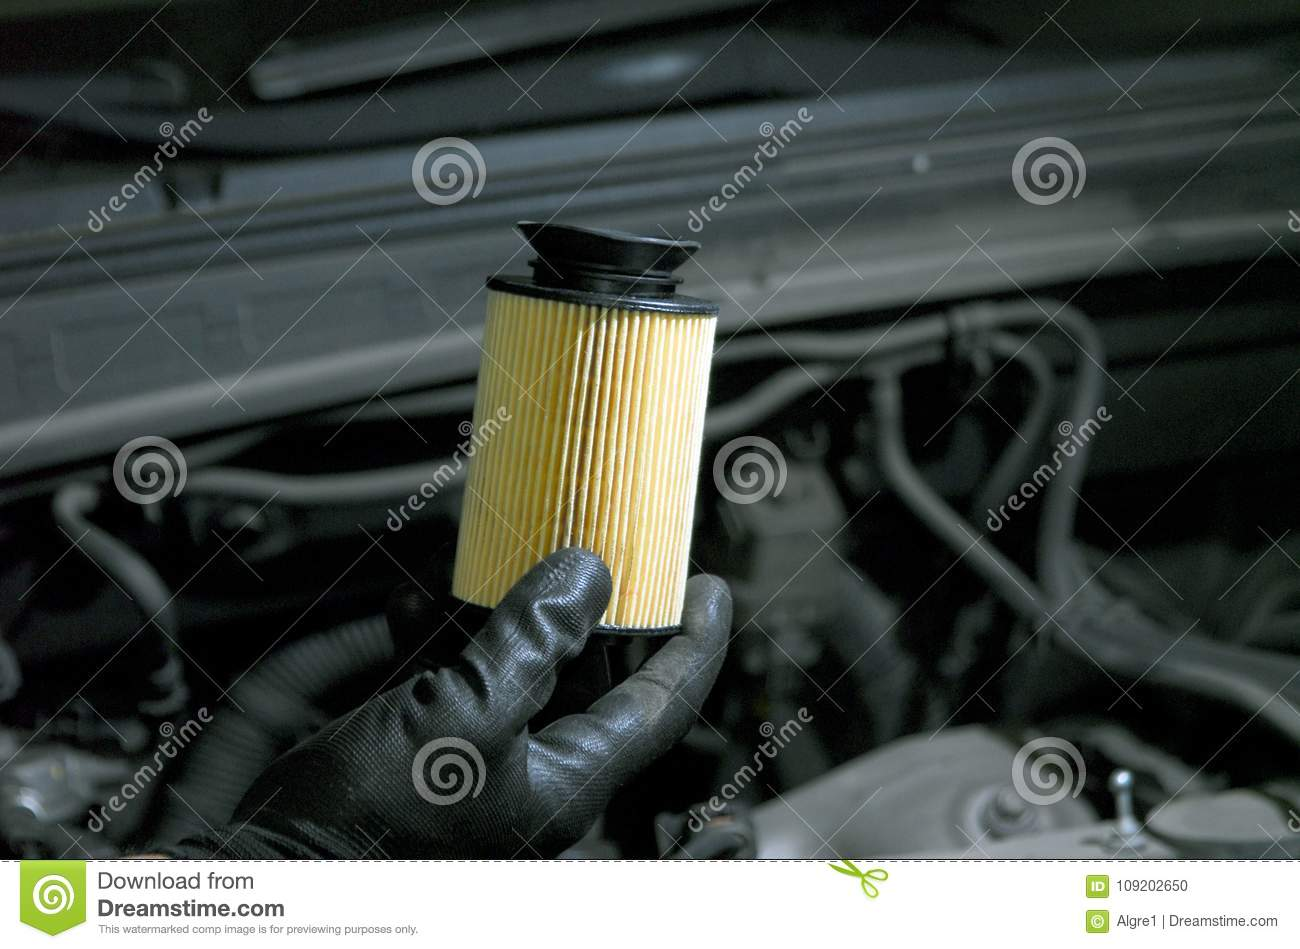 Replacement of oil filter stock photo. Image of service - 109202650